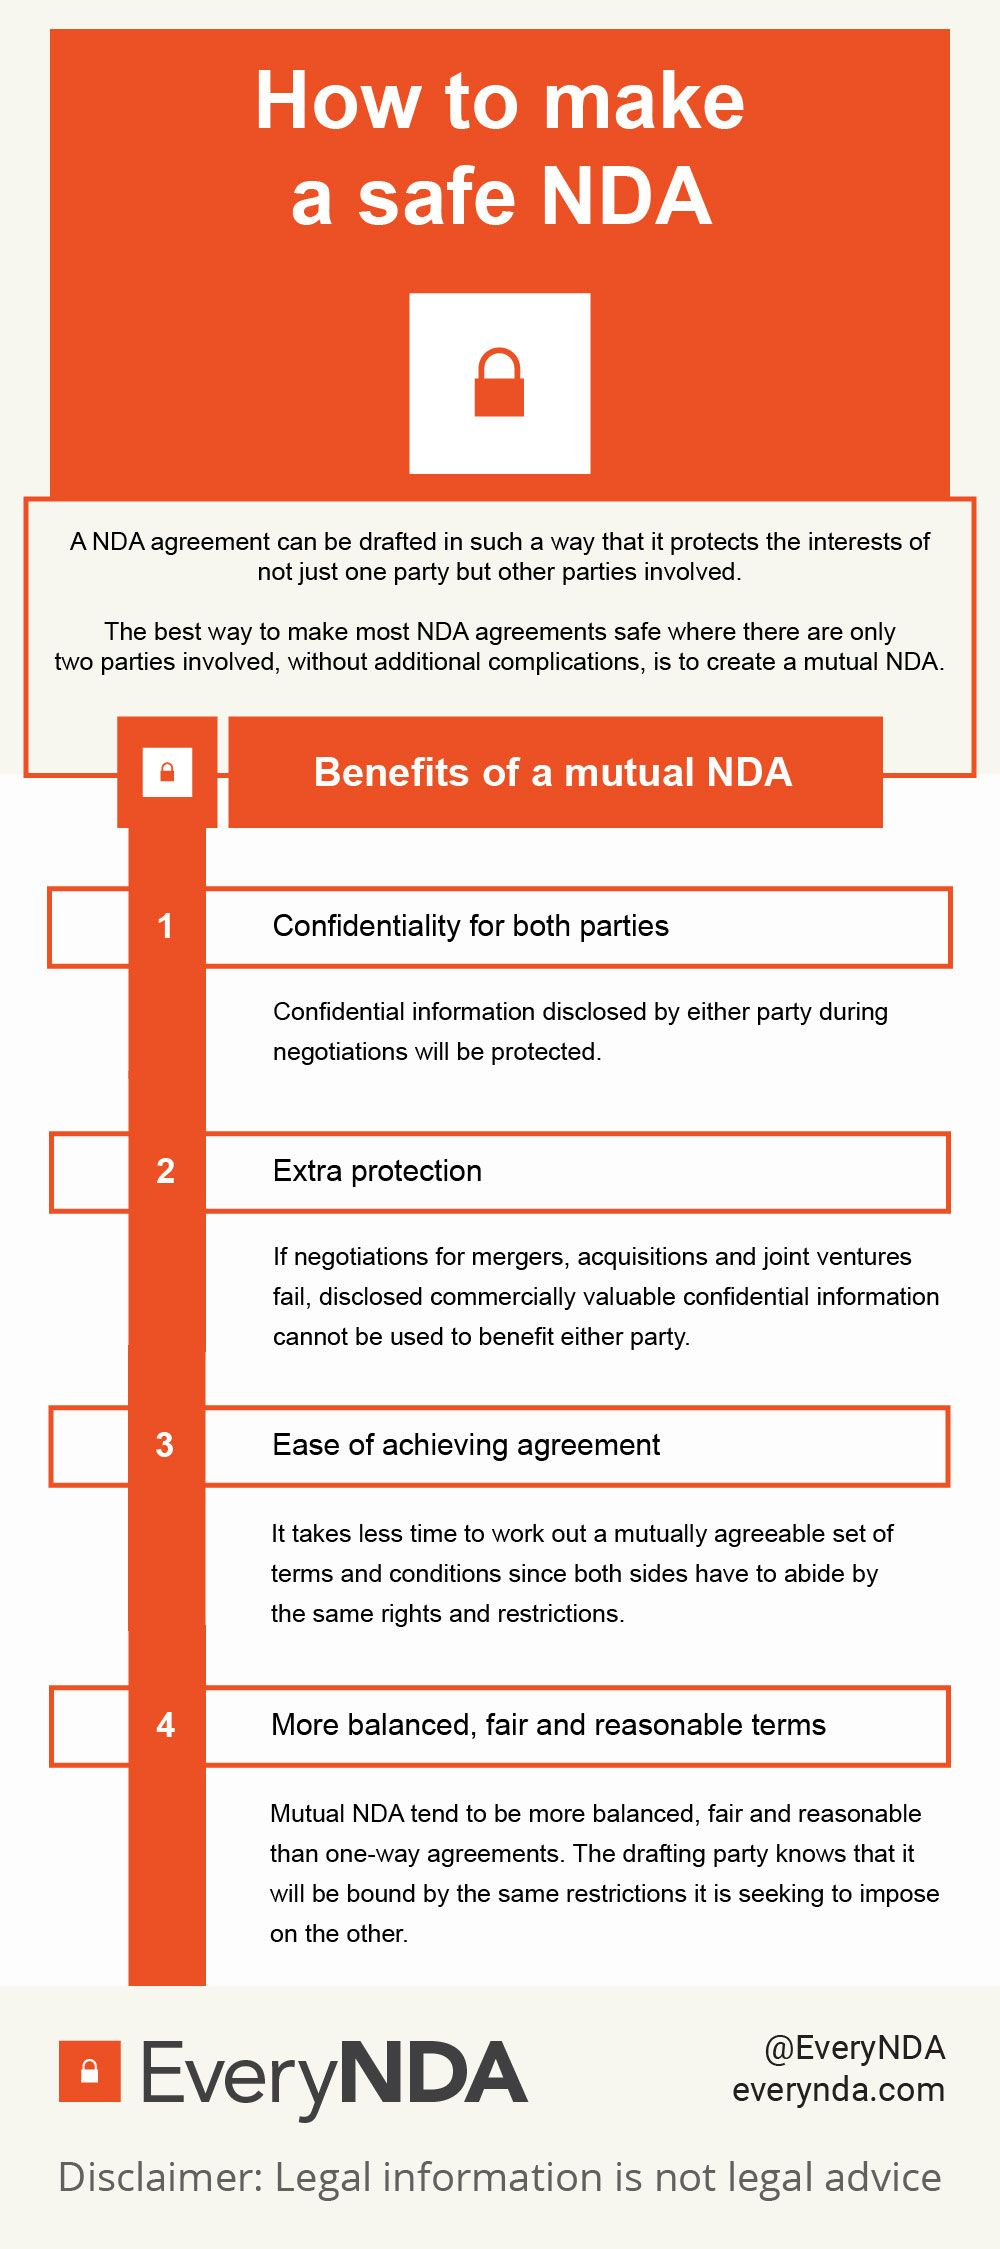 A Mutual Nda Comes With A Number Of Benefits  For All Parties